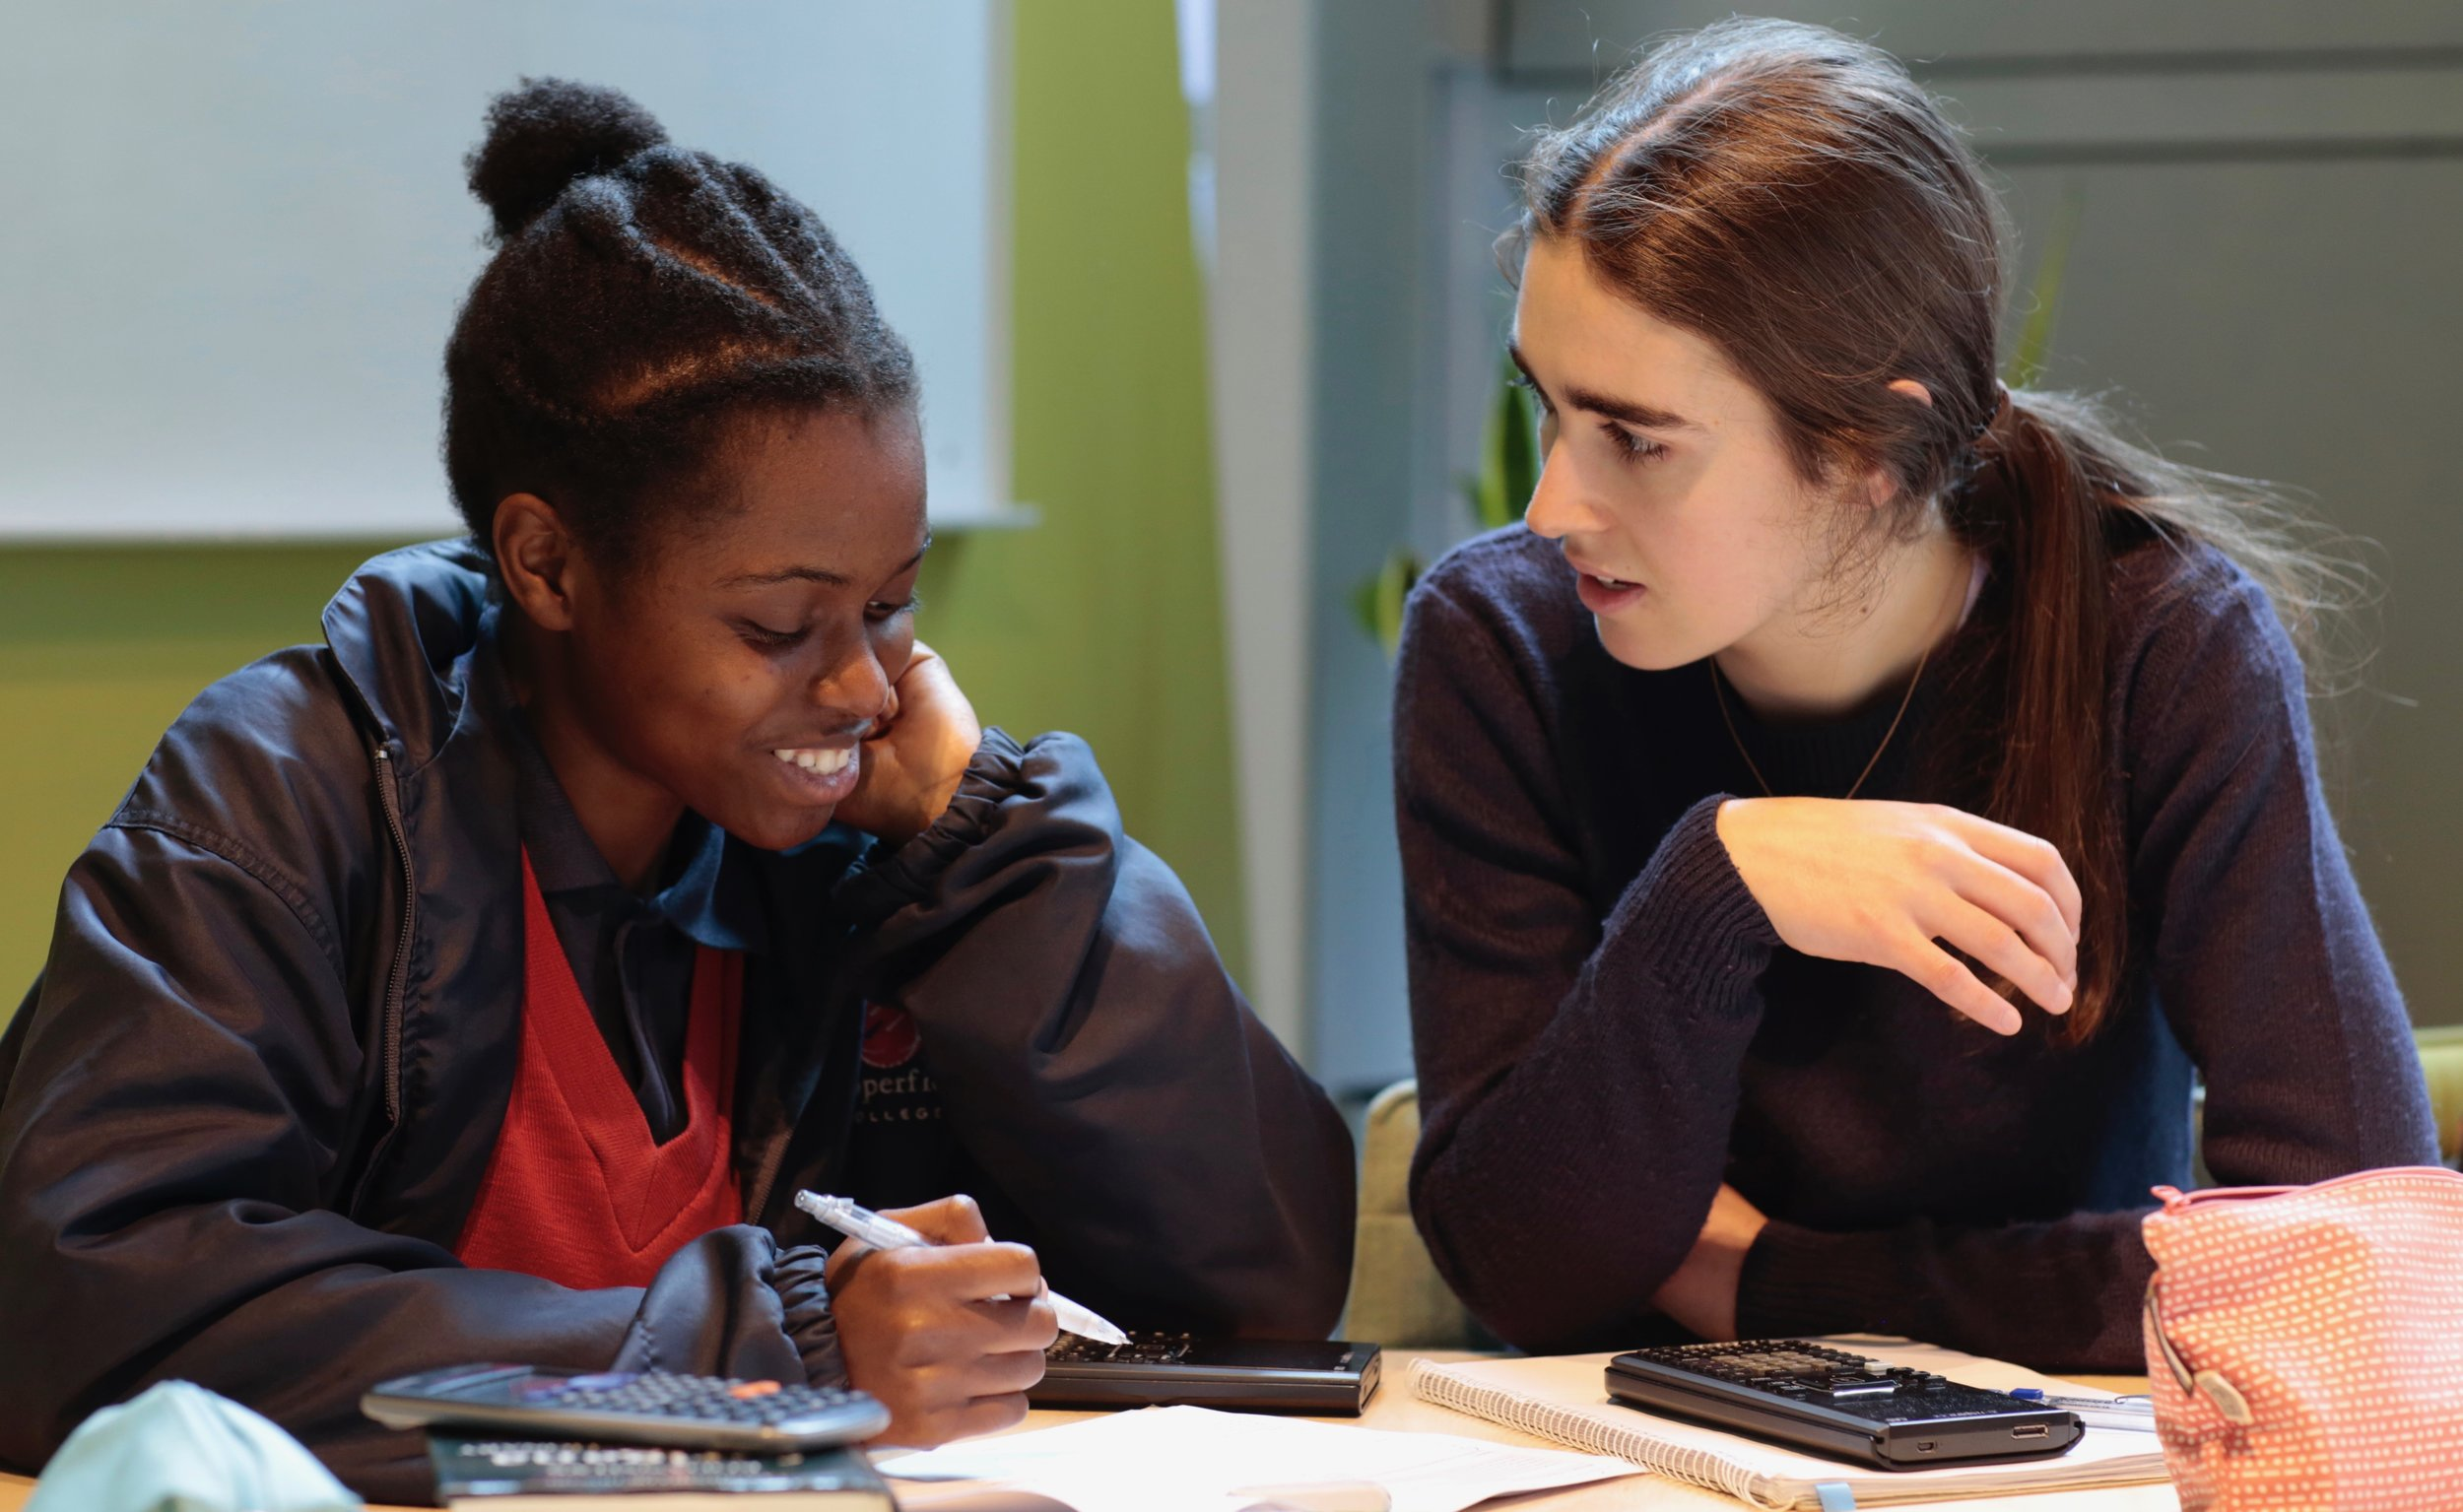 Mentoring takes place in safe and open yet quiet spaces kindly provided by our partners.